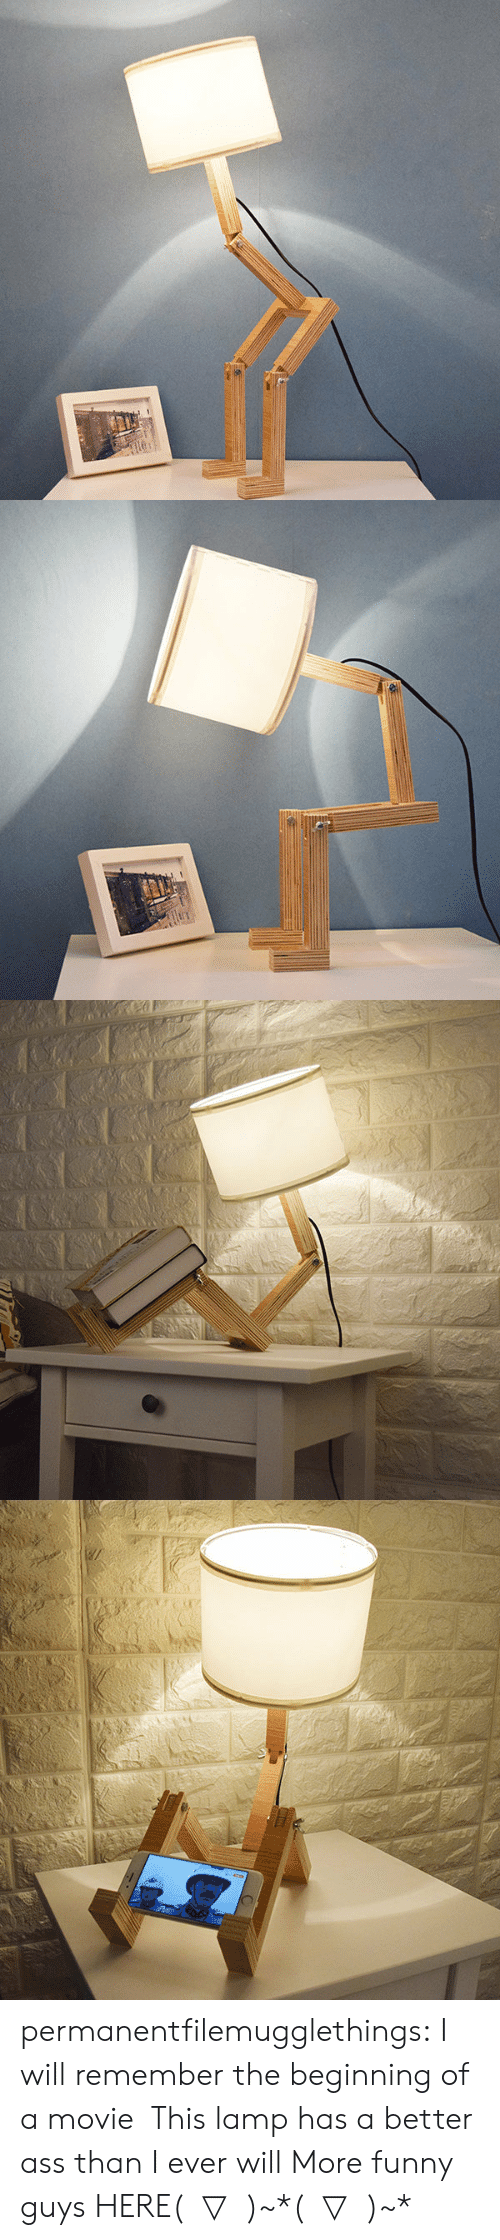 Ass, Funny, and Tumblr: 130C permanentfilemugglethings: I will remember the beginning of a movie,This lamp has a better ass than I ever will More funny guys HERE( ̄▽ ̄)~*( ̄▽ ̄)~*